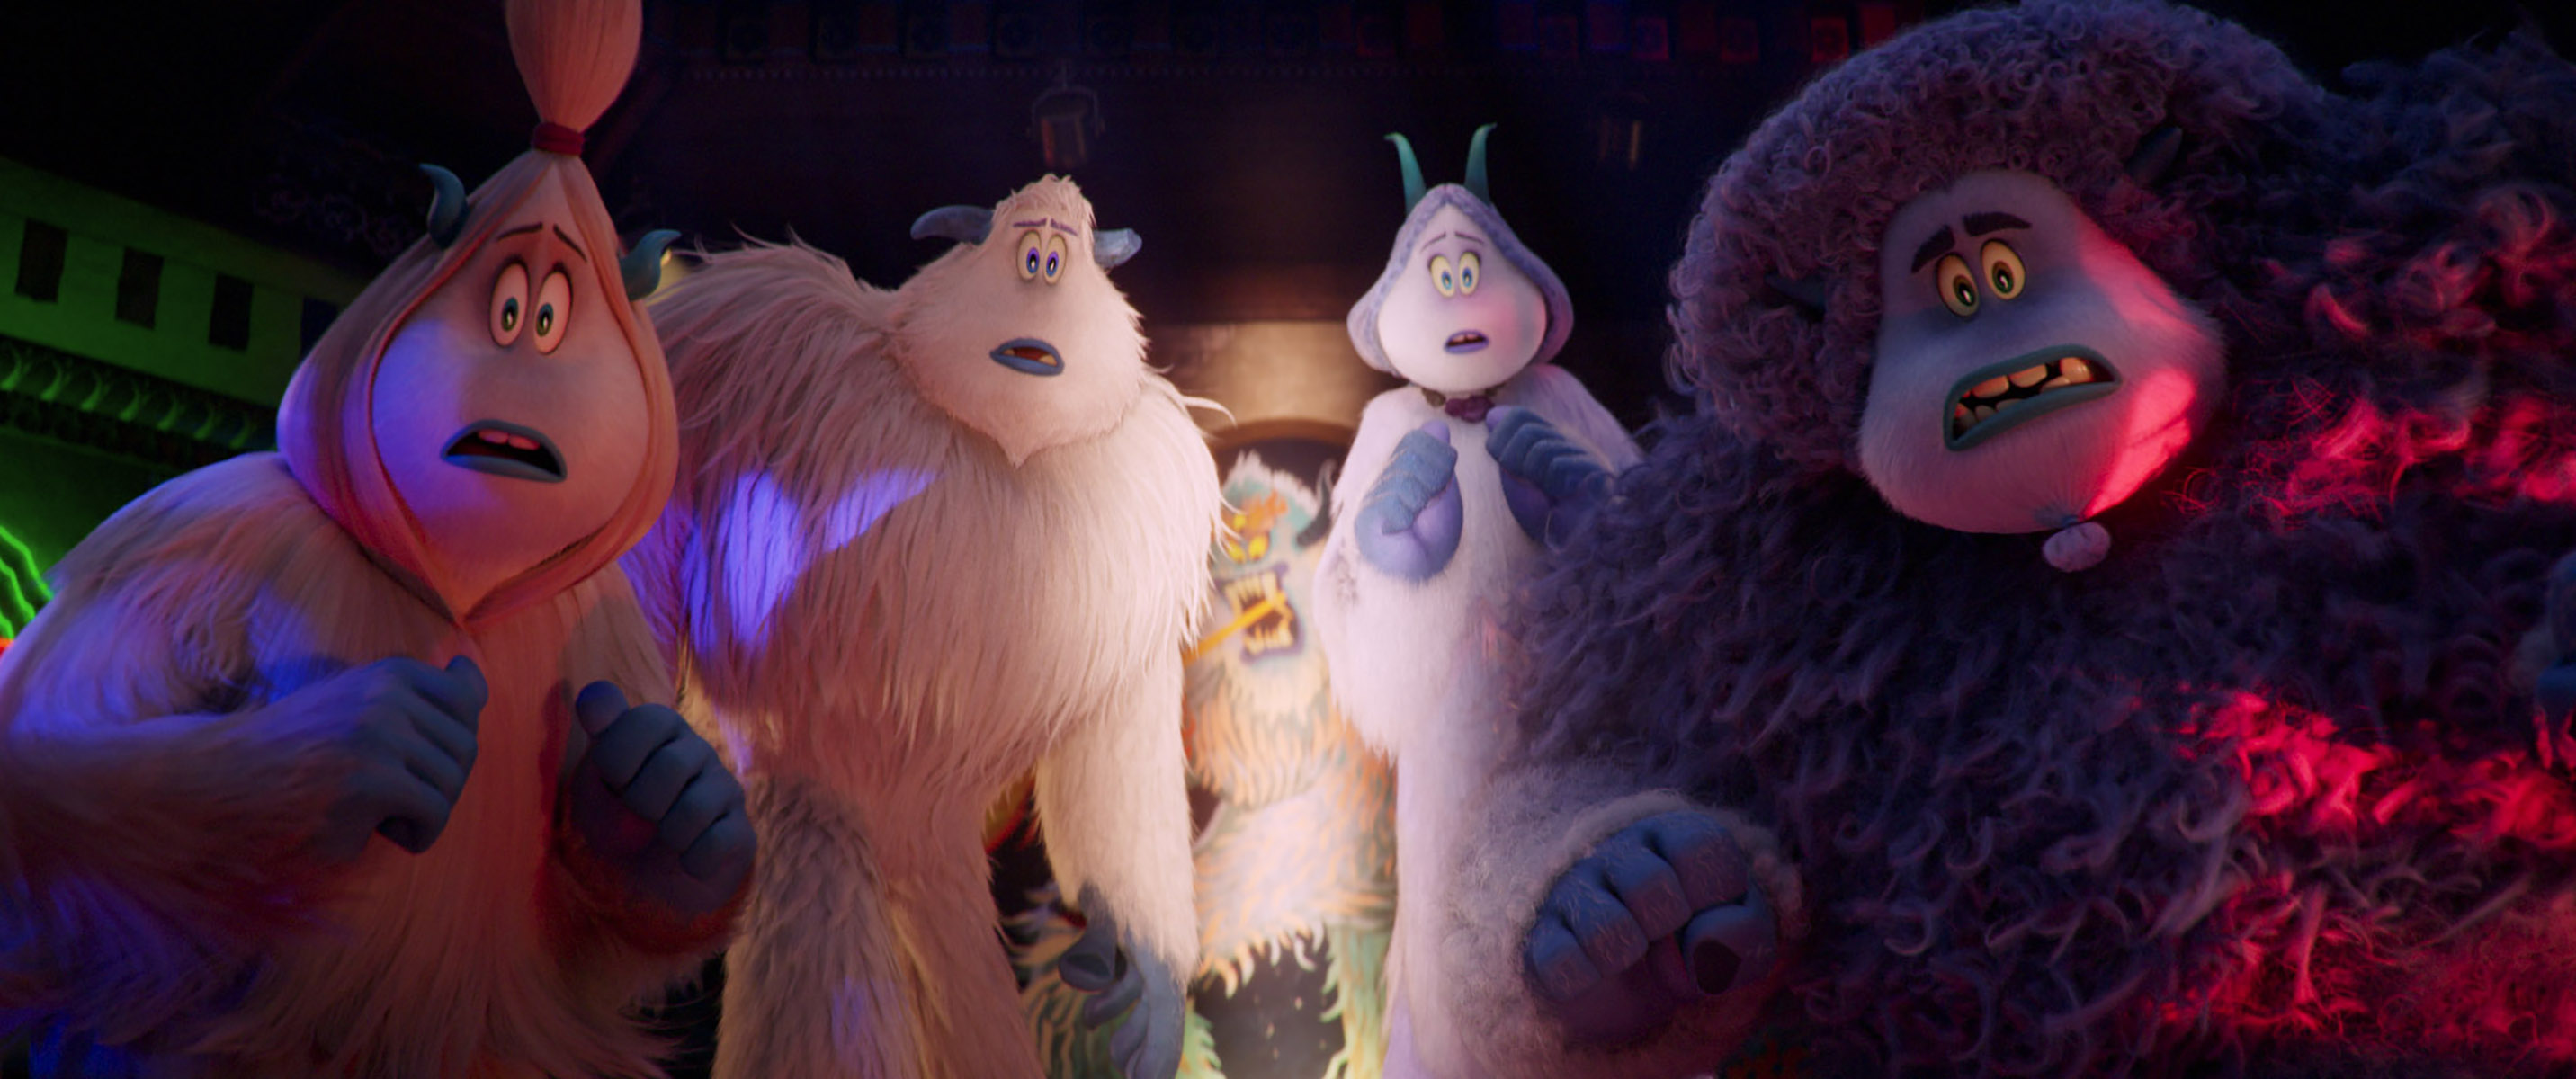 Smallfoot Gallery 32